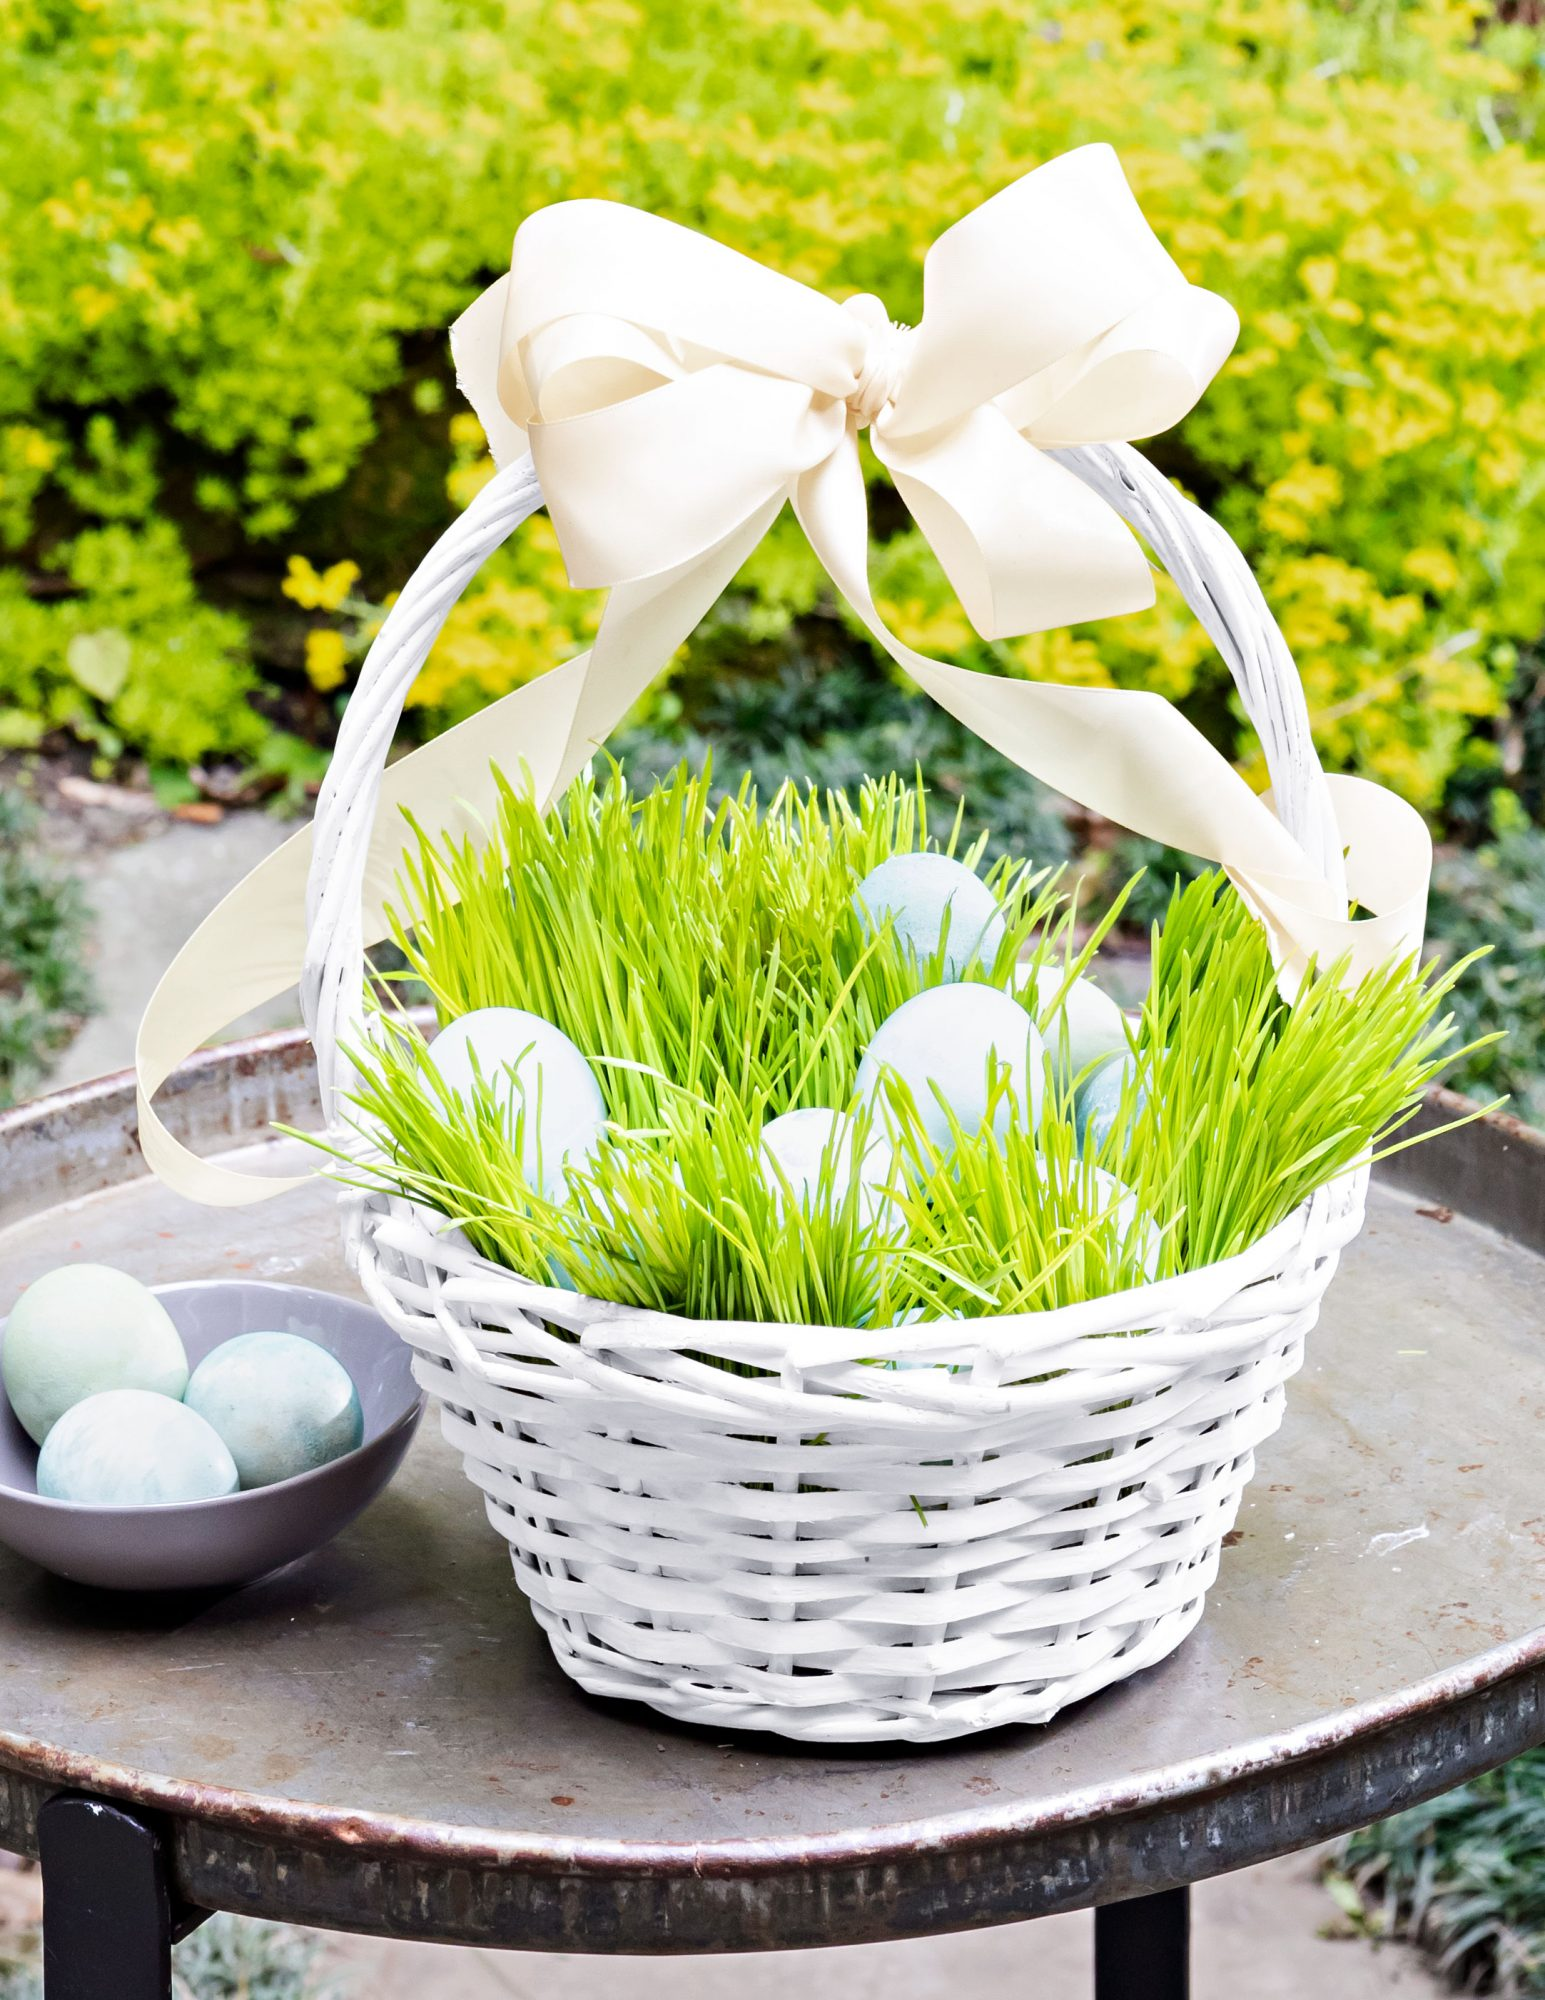 Easter basket with live wheat grass and dyed Easter eggs